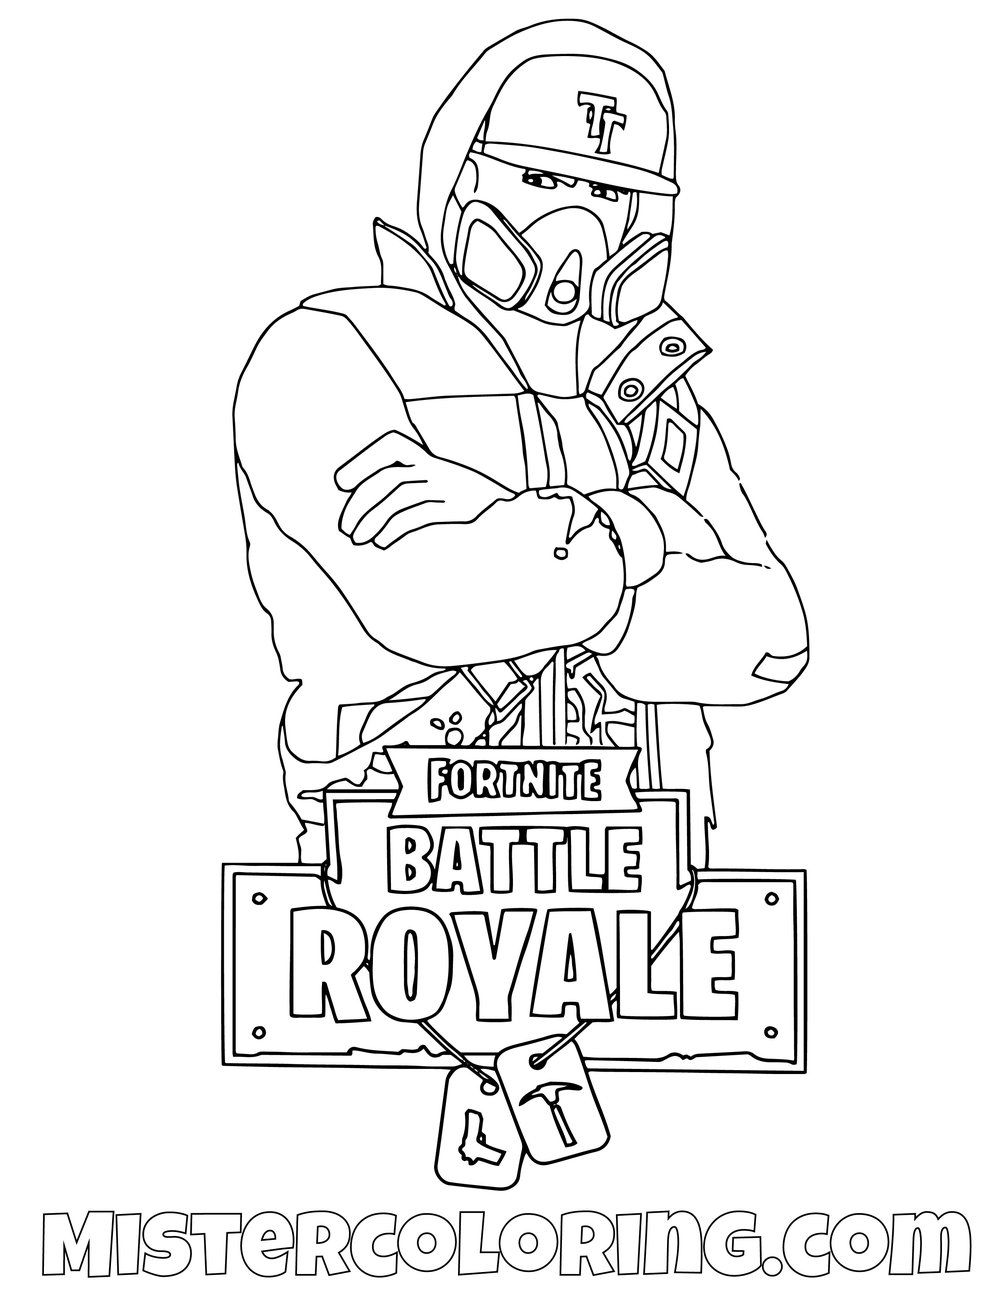 Free Drift Level 1 Fornite Skin Coloring Page For Kids Imprimir